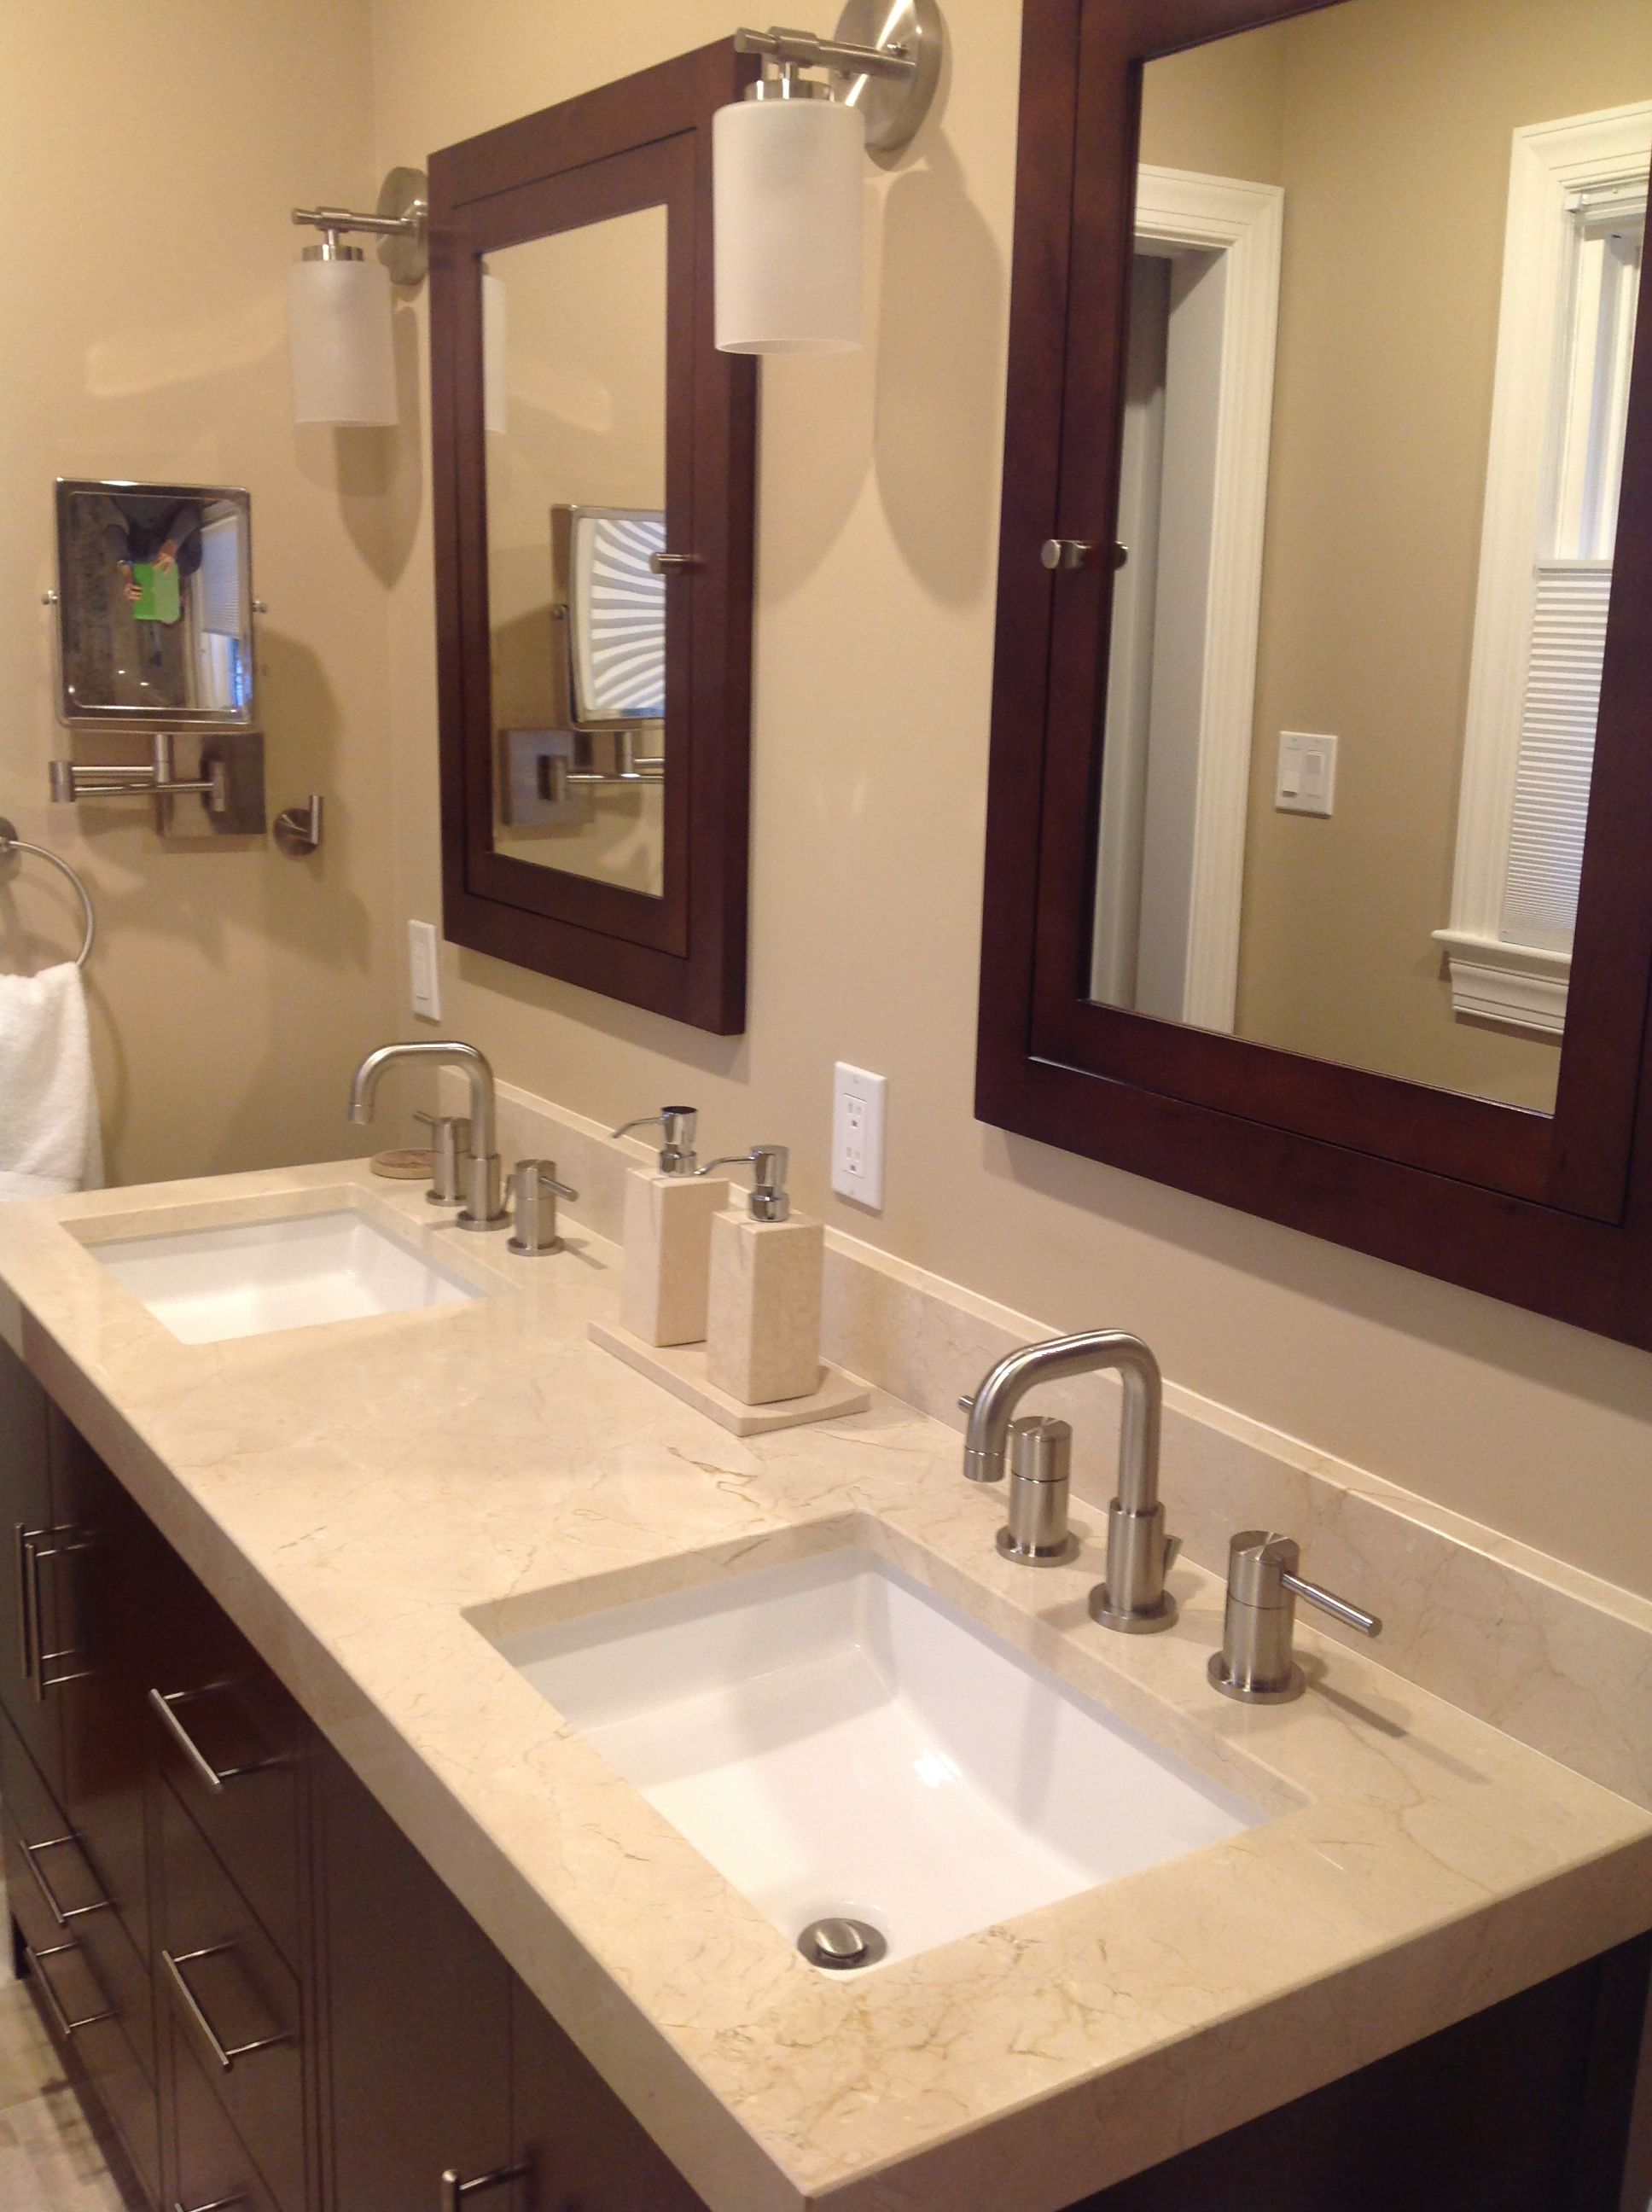 Recessed Medicine Cabinets And Rectangular Undermount Sinks Want Single Handle Faucets Though Not Doub Bathrooms Remodel Sink Remodel Bathroom Remodel Master